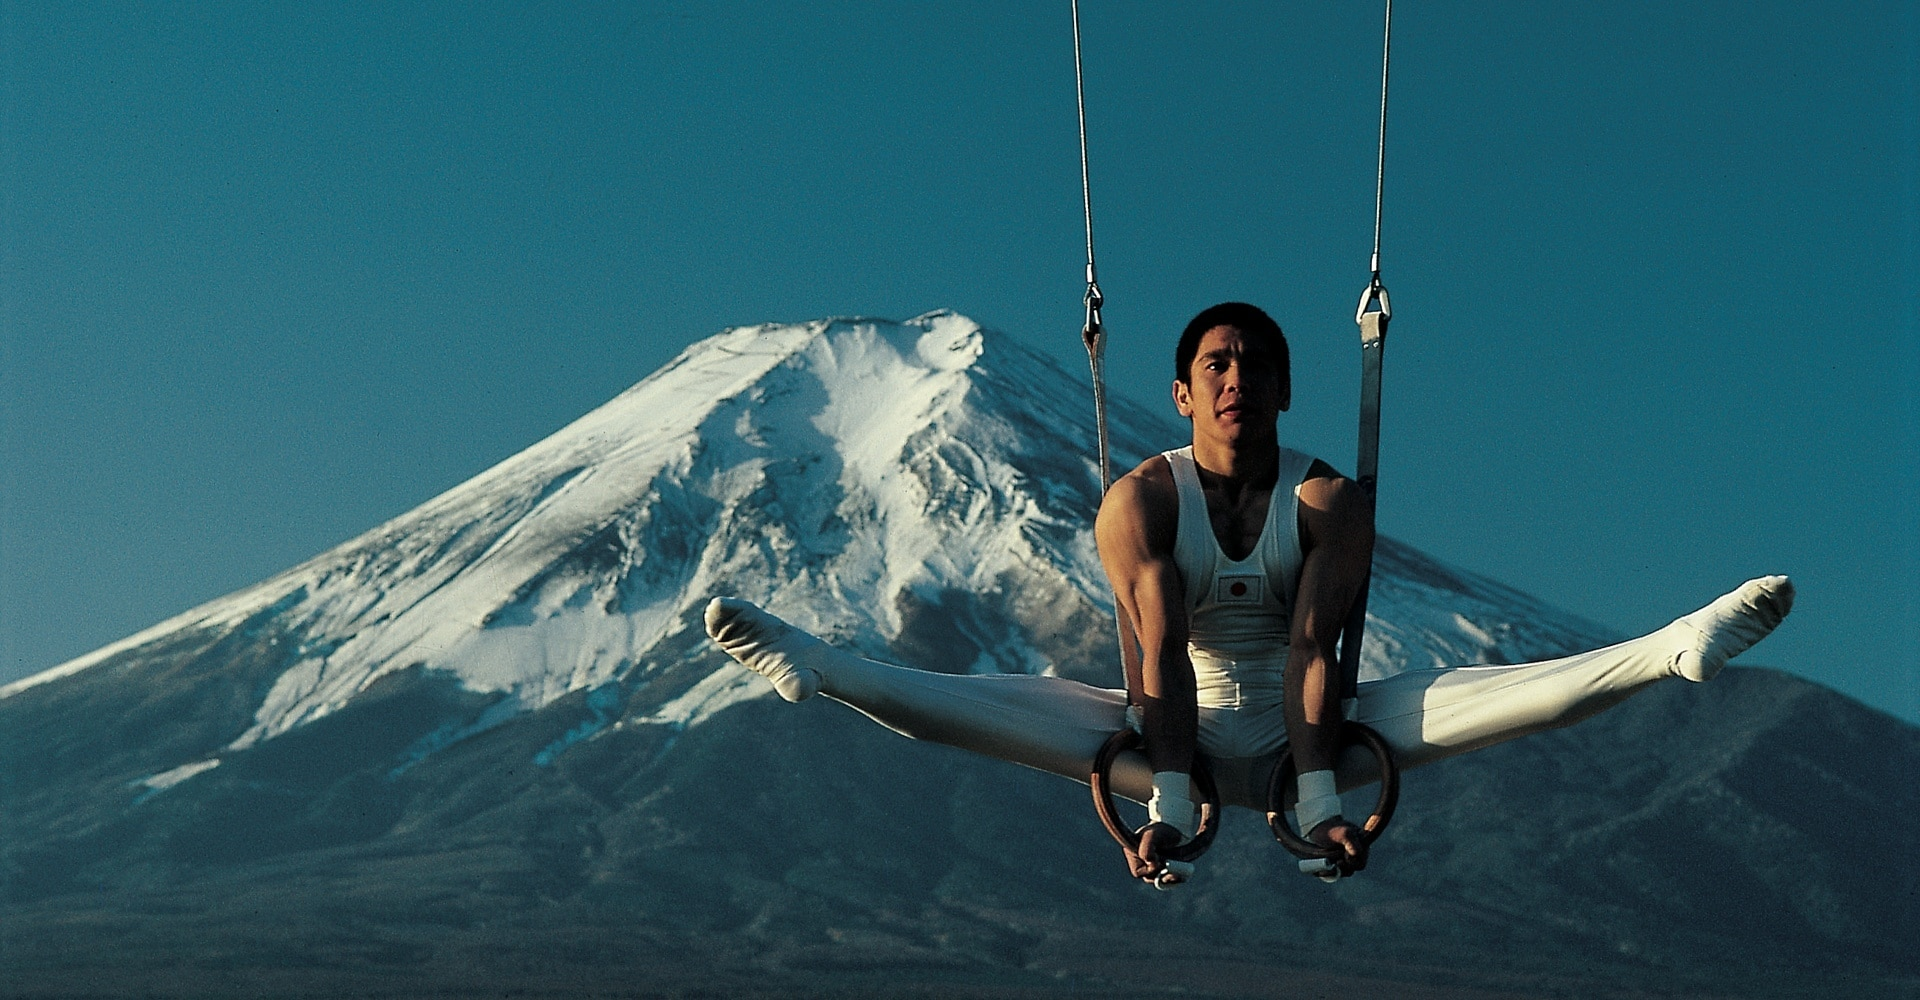 Koji Gushiken on rings in front of Mount Fuji, Japan.